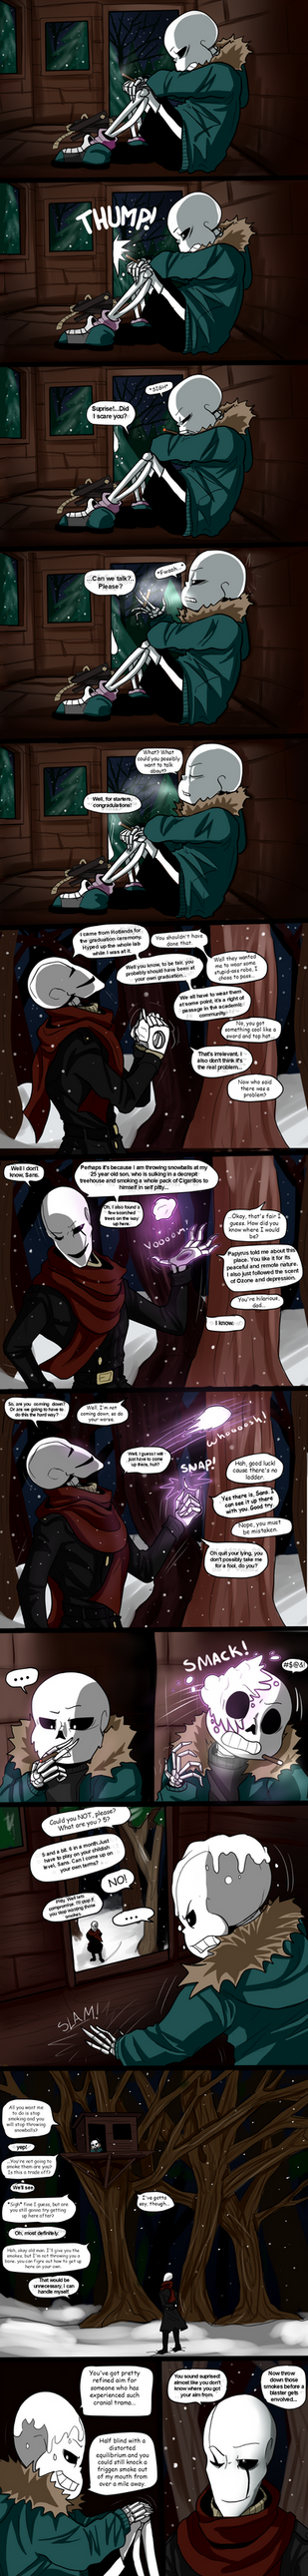 Bad days part 2- page 1